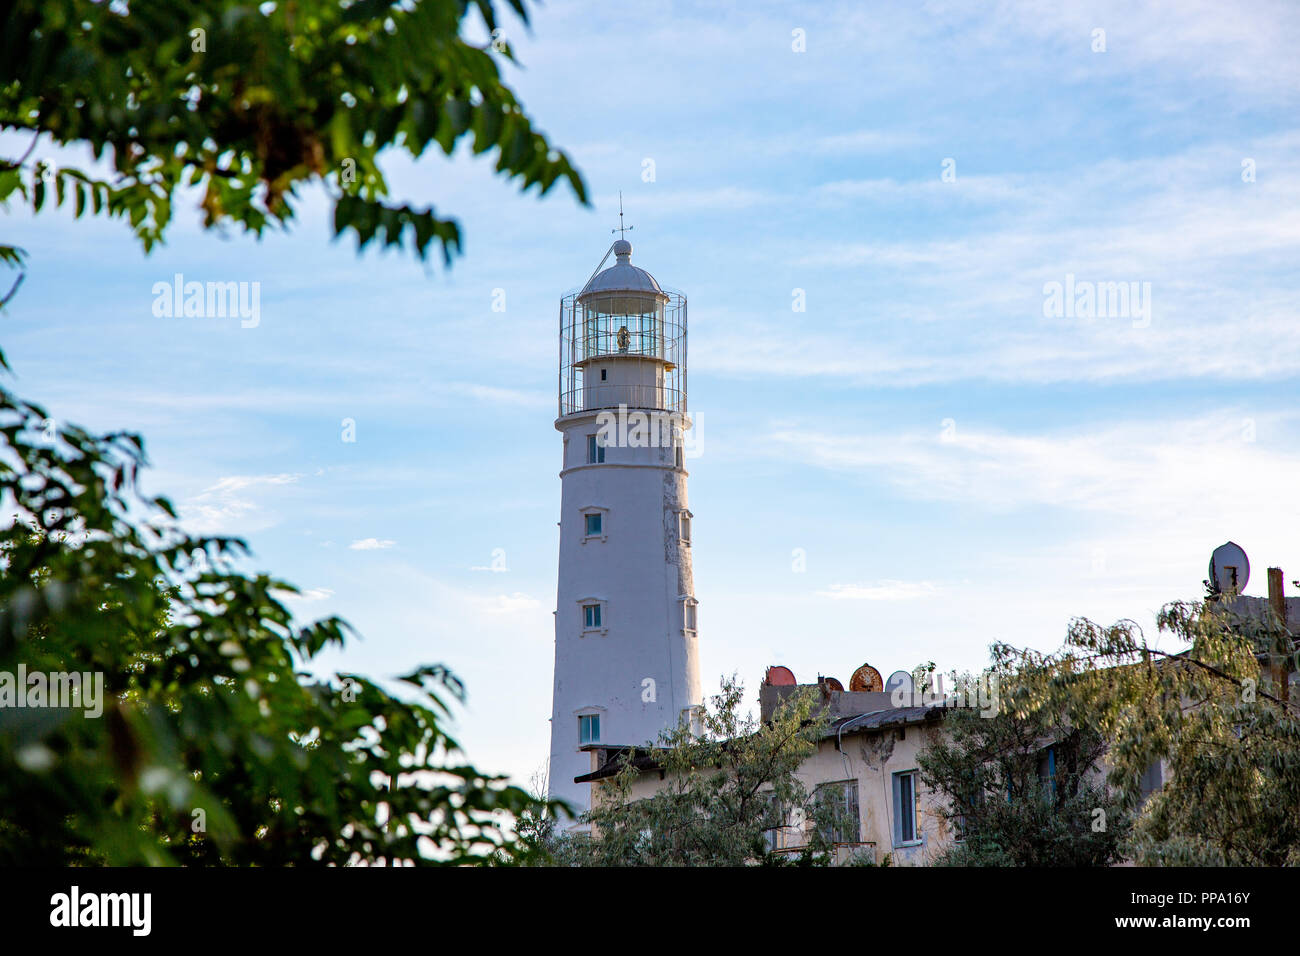 Lighthouse searchlight beam near ocean at day light Lighthouse in clear weather - Stock Image